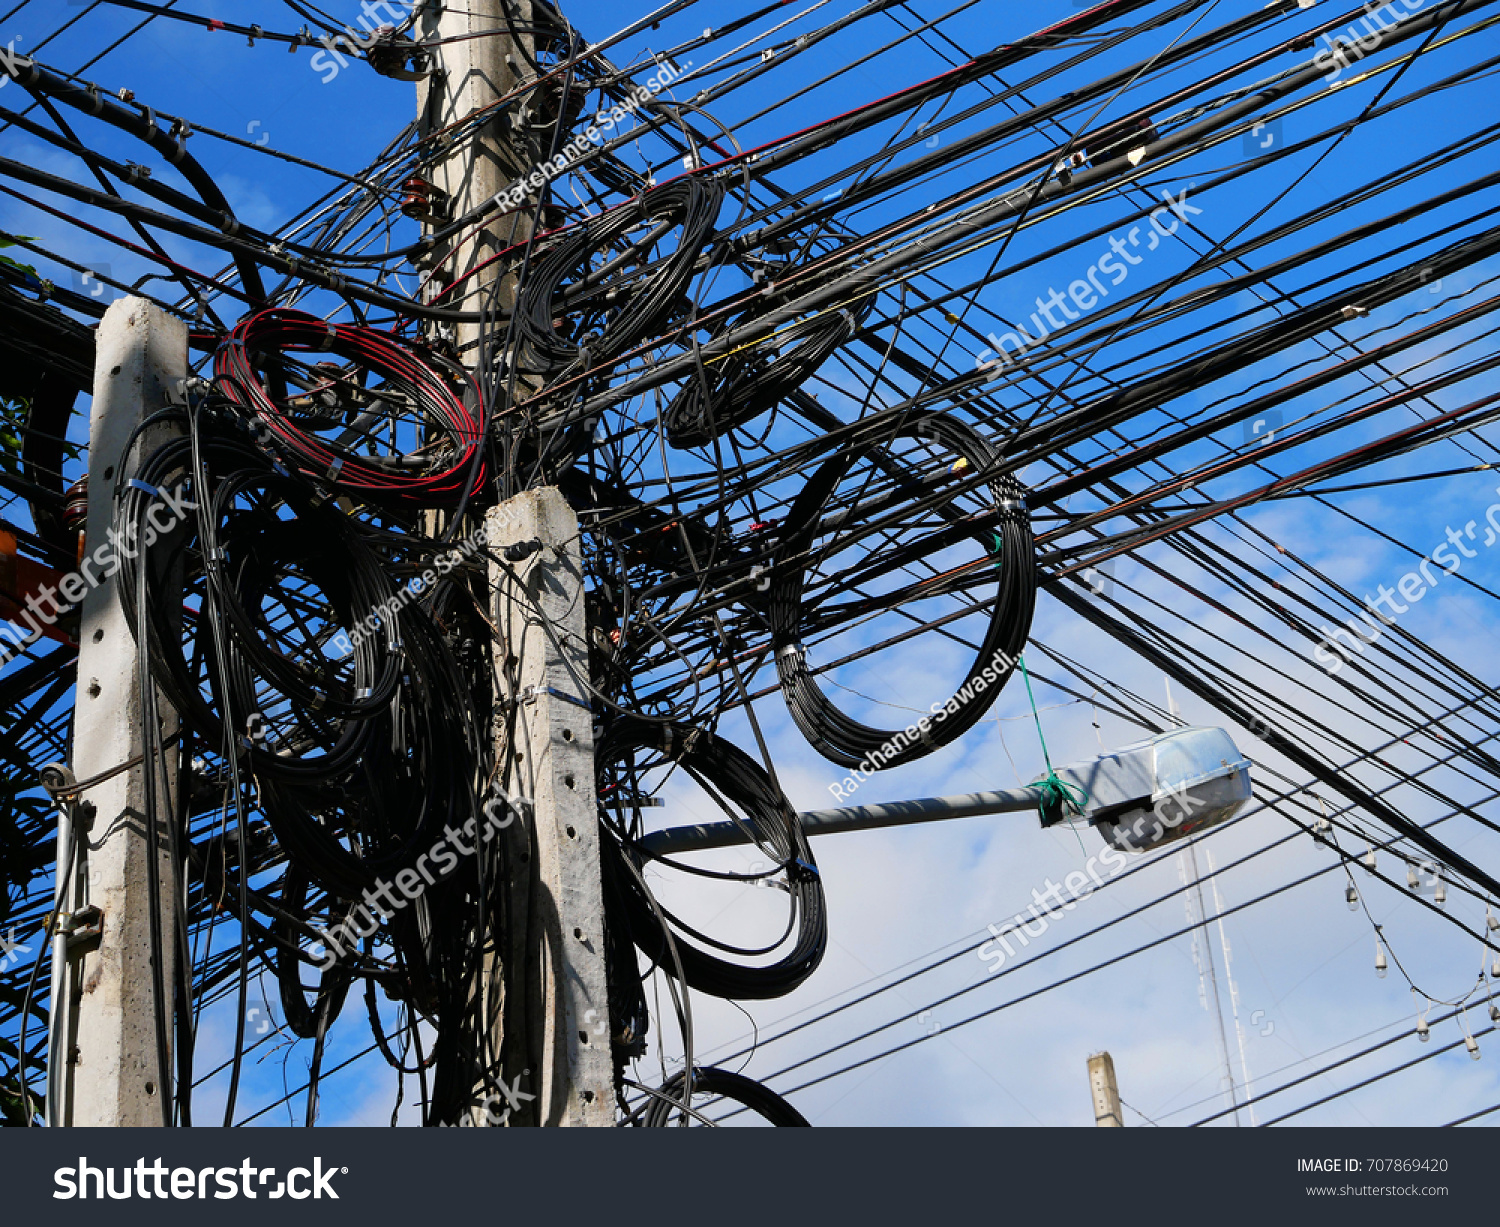 The Messy Wires Ez Canvas Electrical Wiring Id 707869420